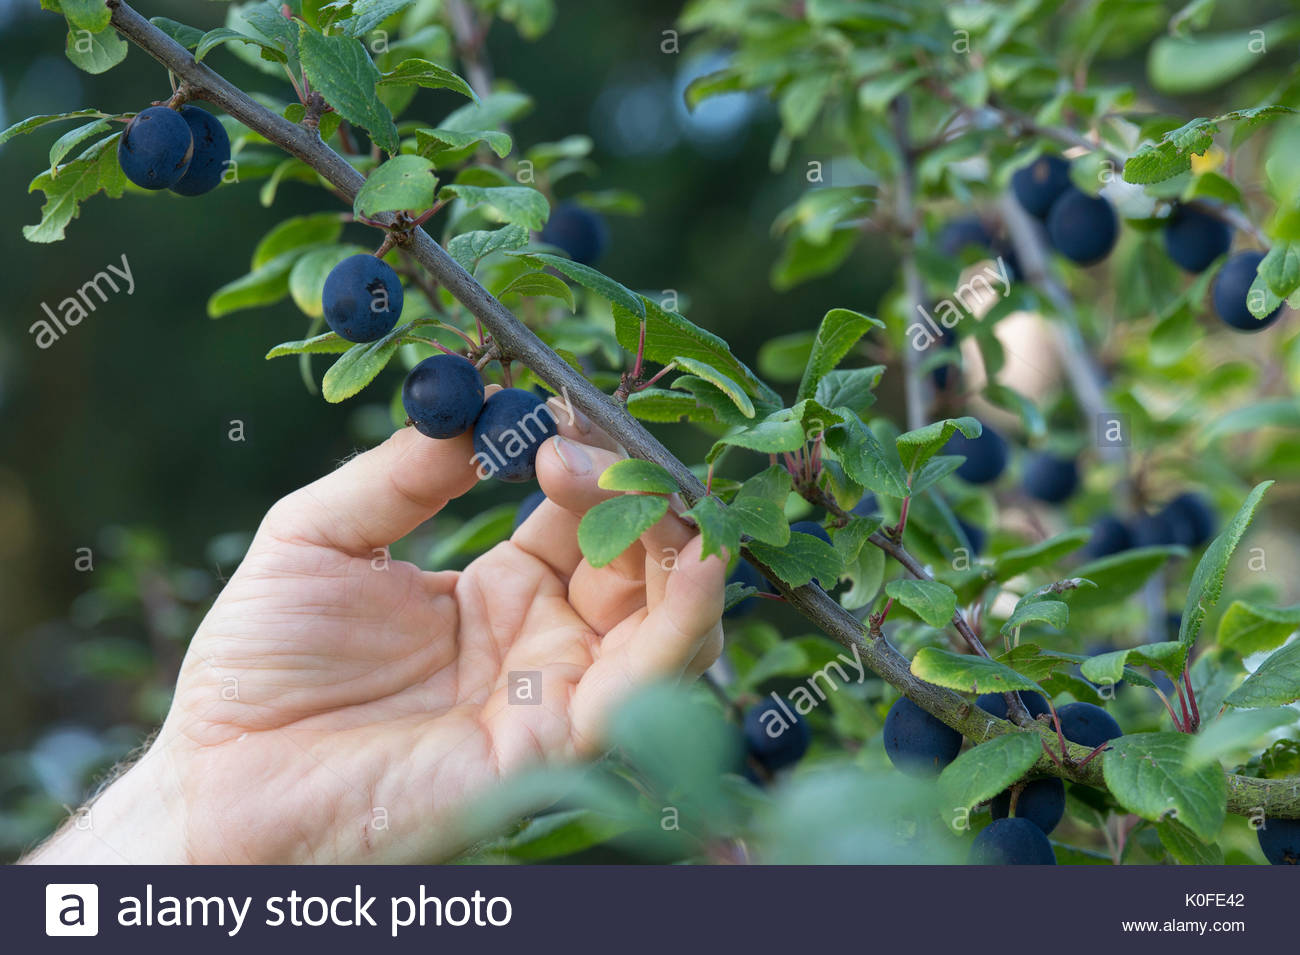 damson plum tree stockfotos damson plum tree bilder alamy. Black Bedroom Furniture Sets. Home Design Ideas